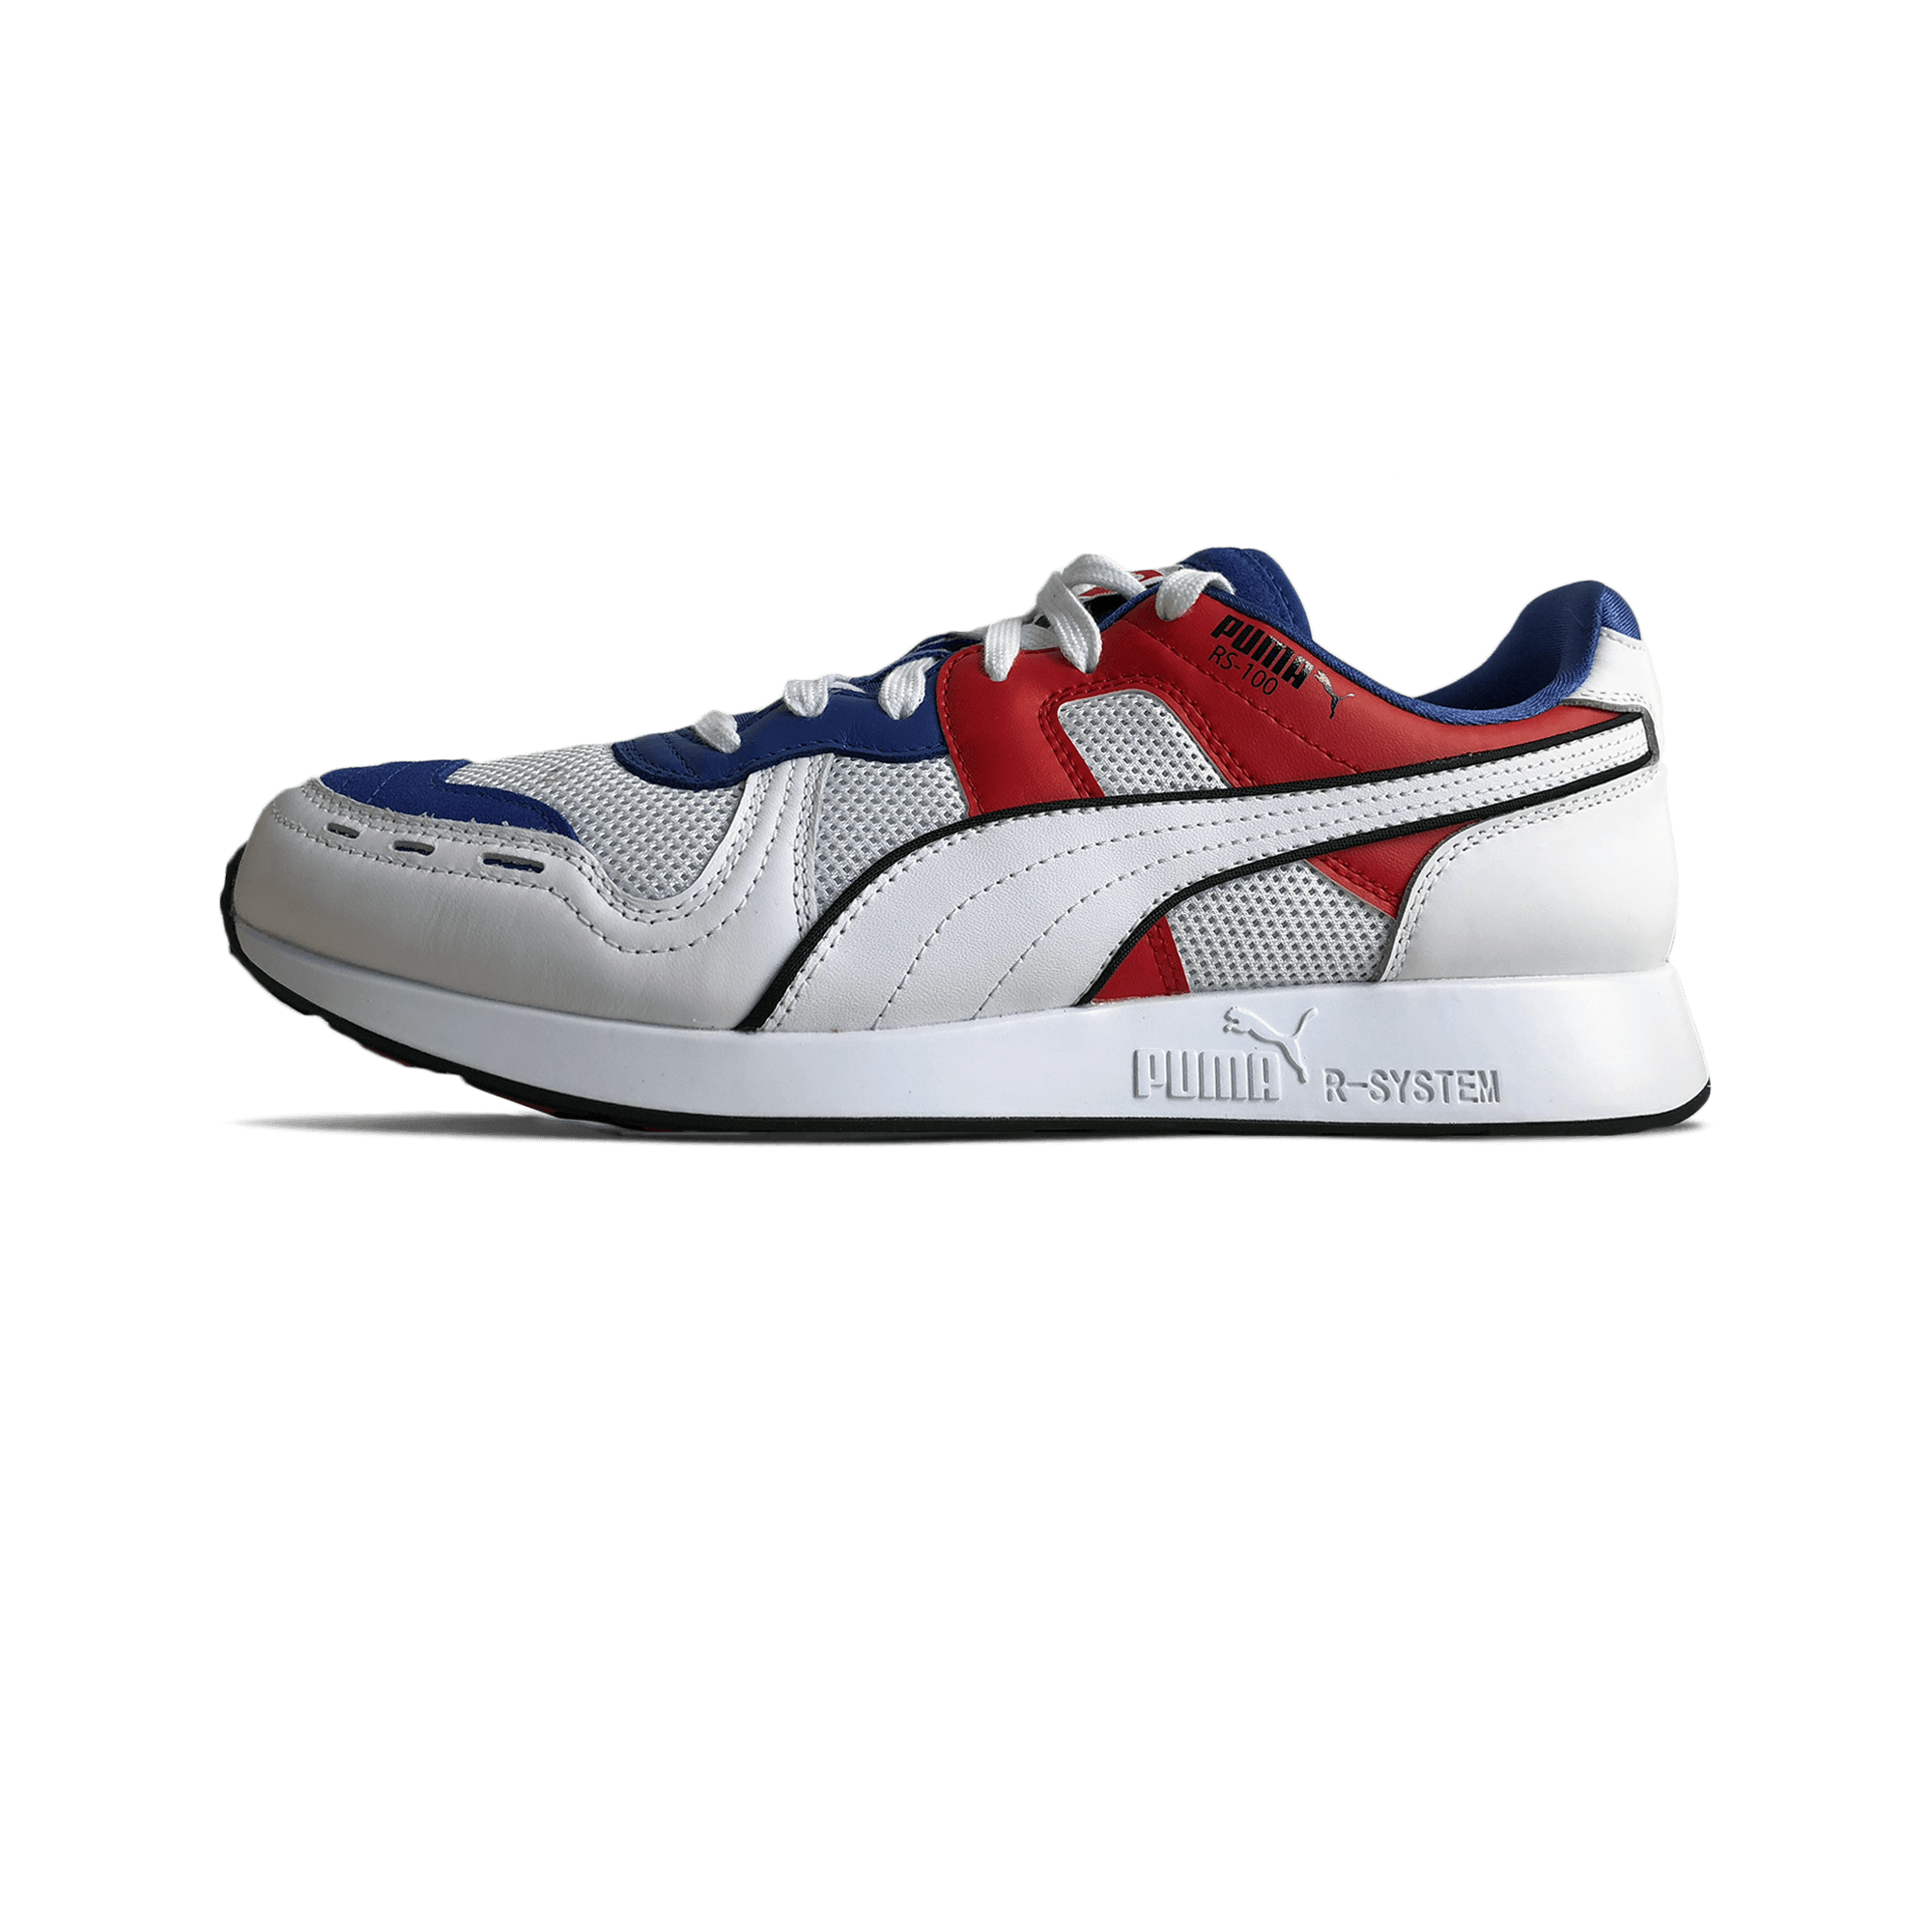 5d322e173de Puma RS-100 Sound dazzling blue / high risk red / white - Men |  Holypopstore.com